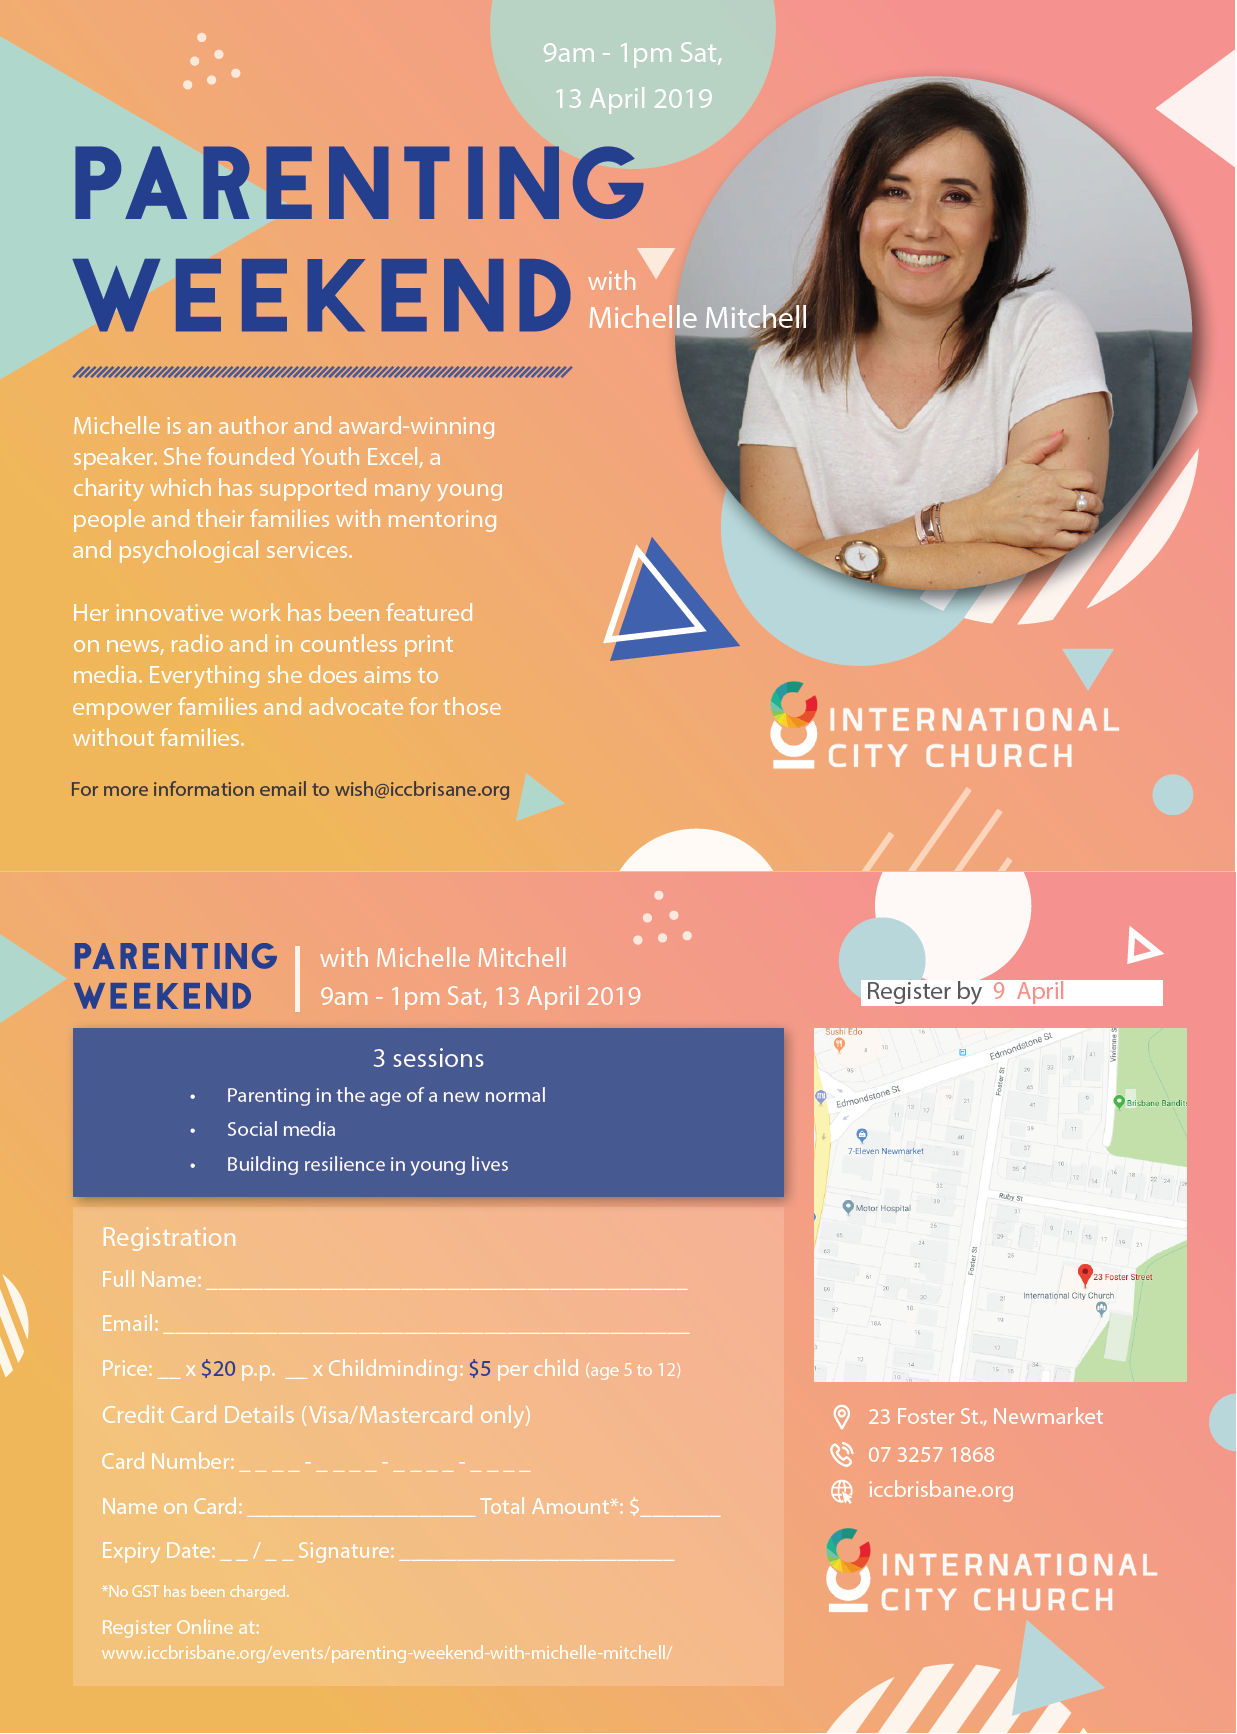 Parenting Weekend with Michelle Mitchell – ICC Brisbane